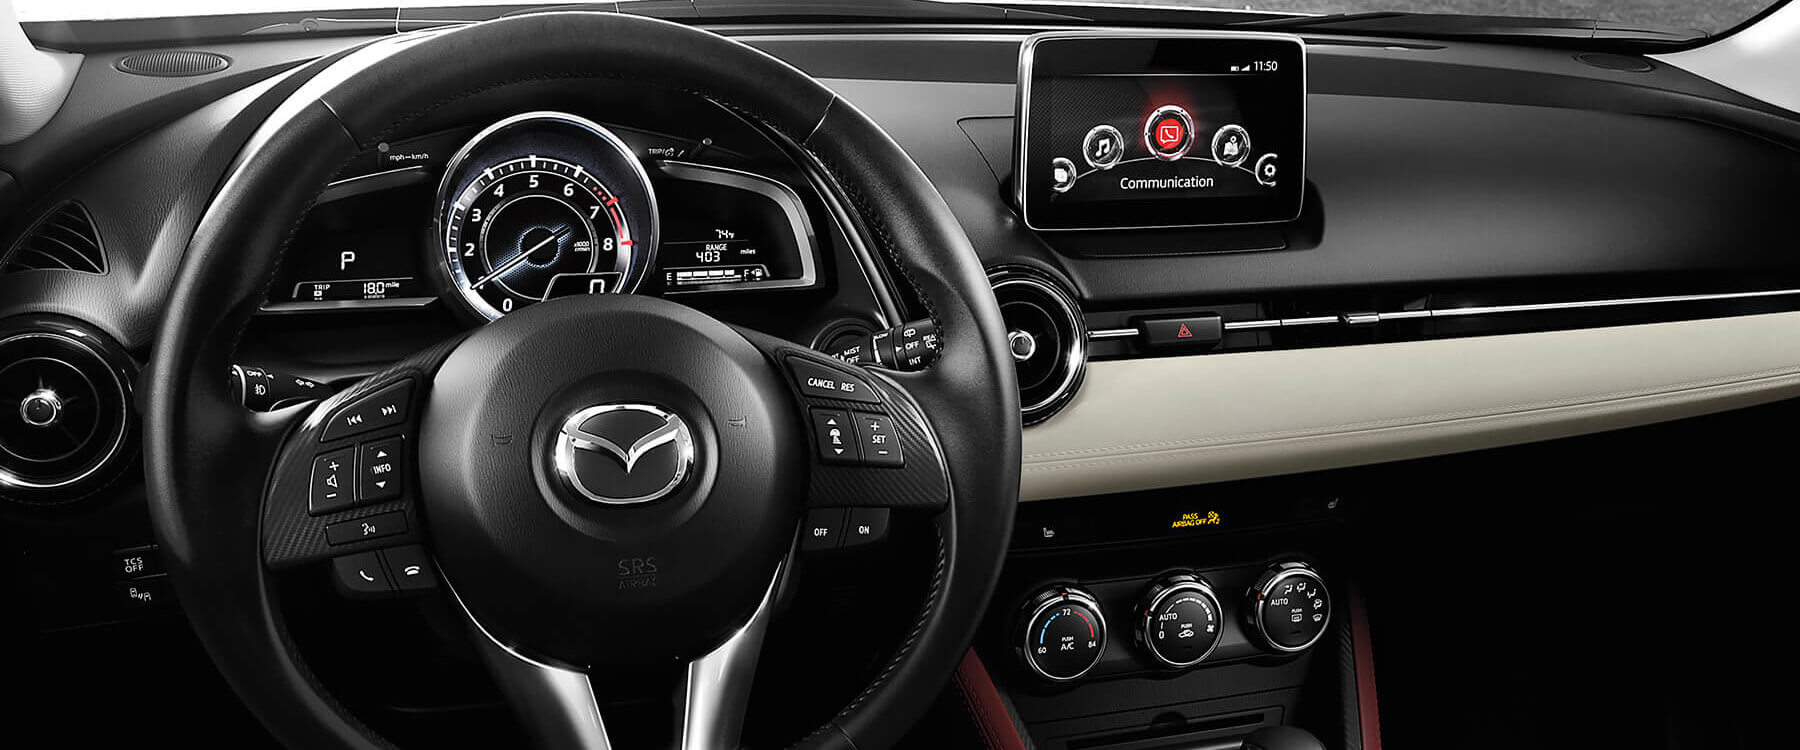 Lovely 2017 Mazda CX 3 Dashboard Design